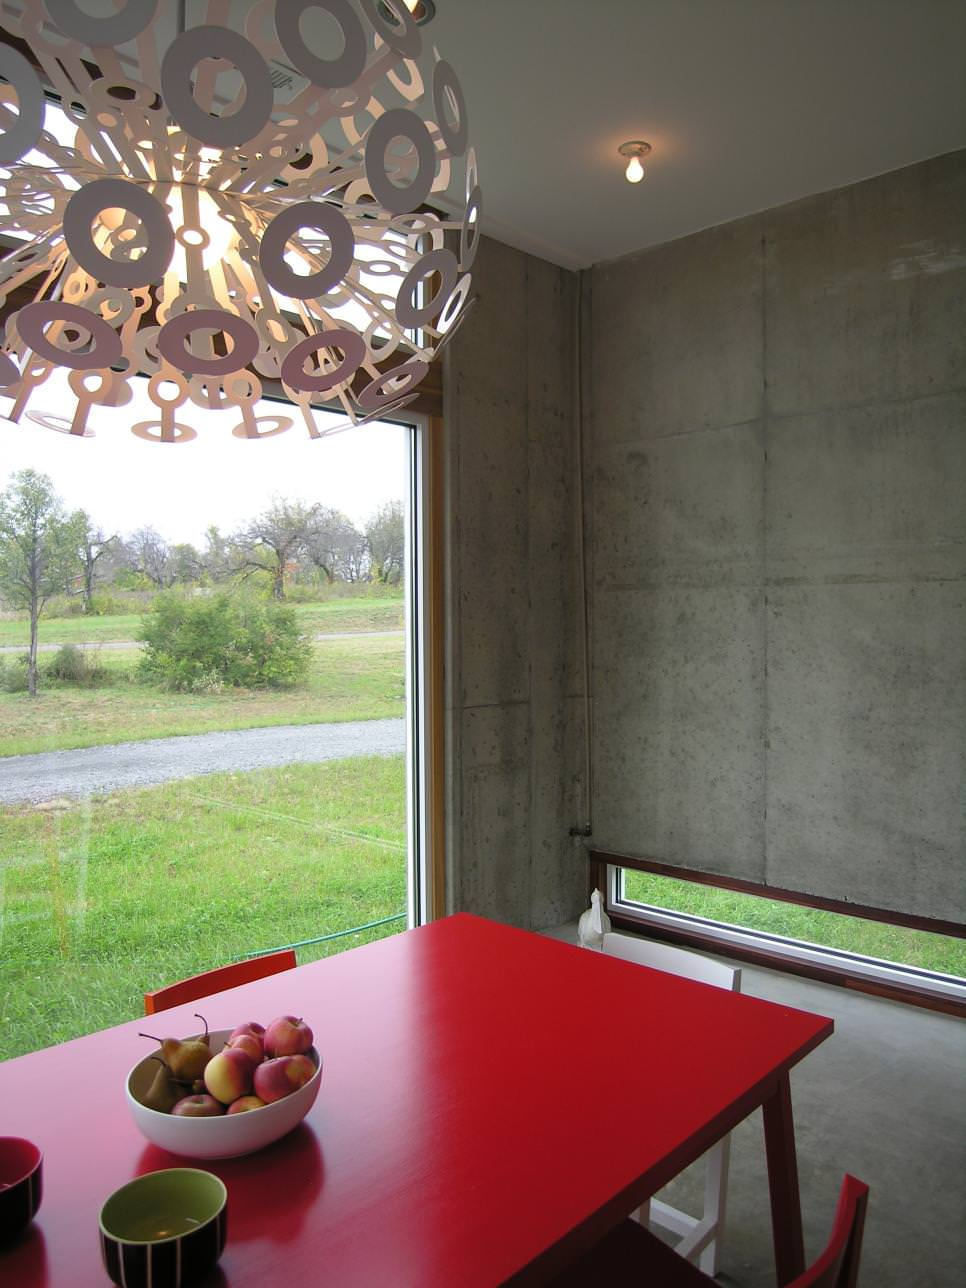 23 Concrete Wall Designs Decor Ideas Design Trends